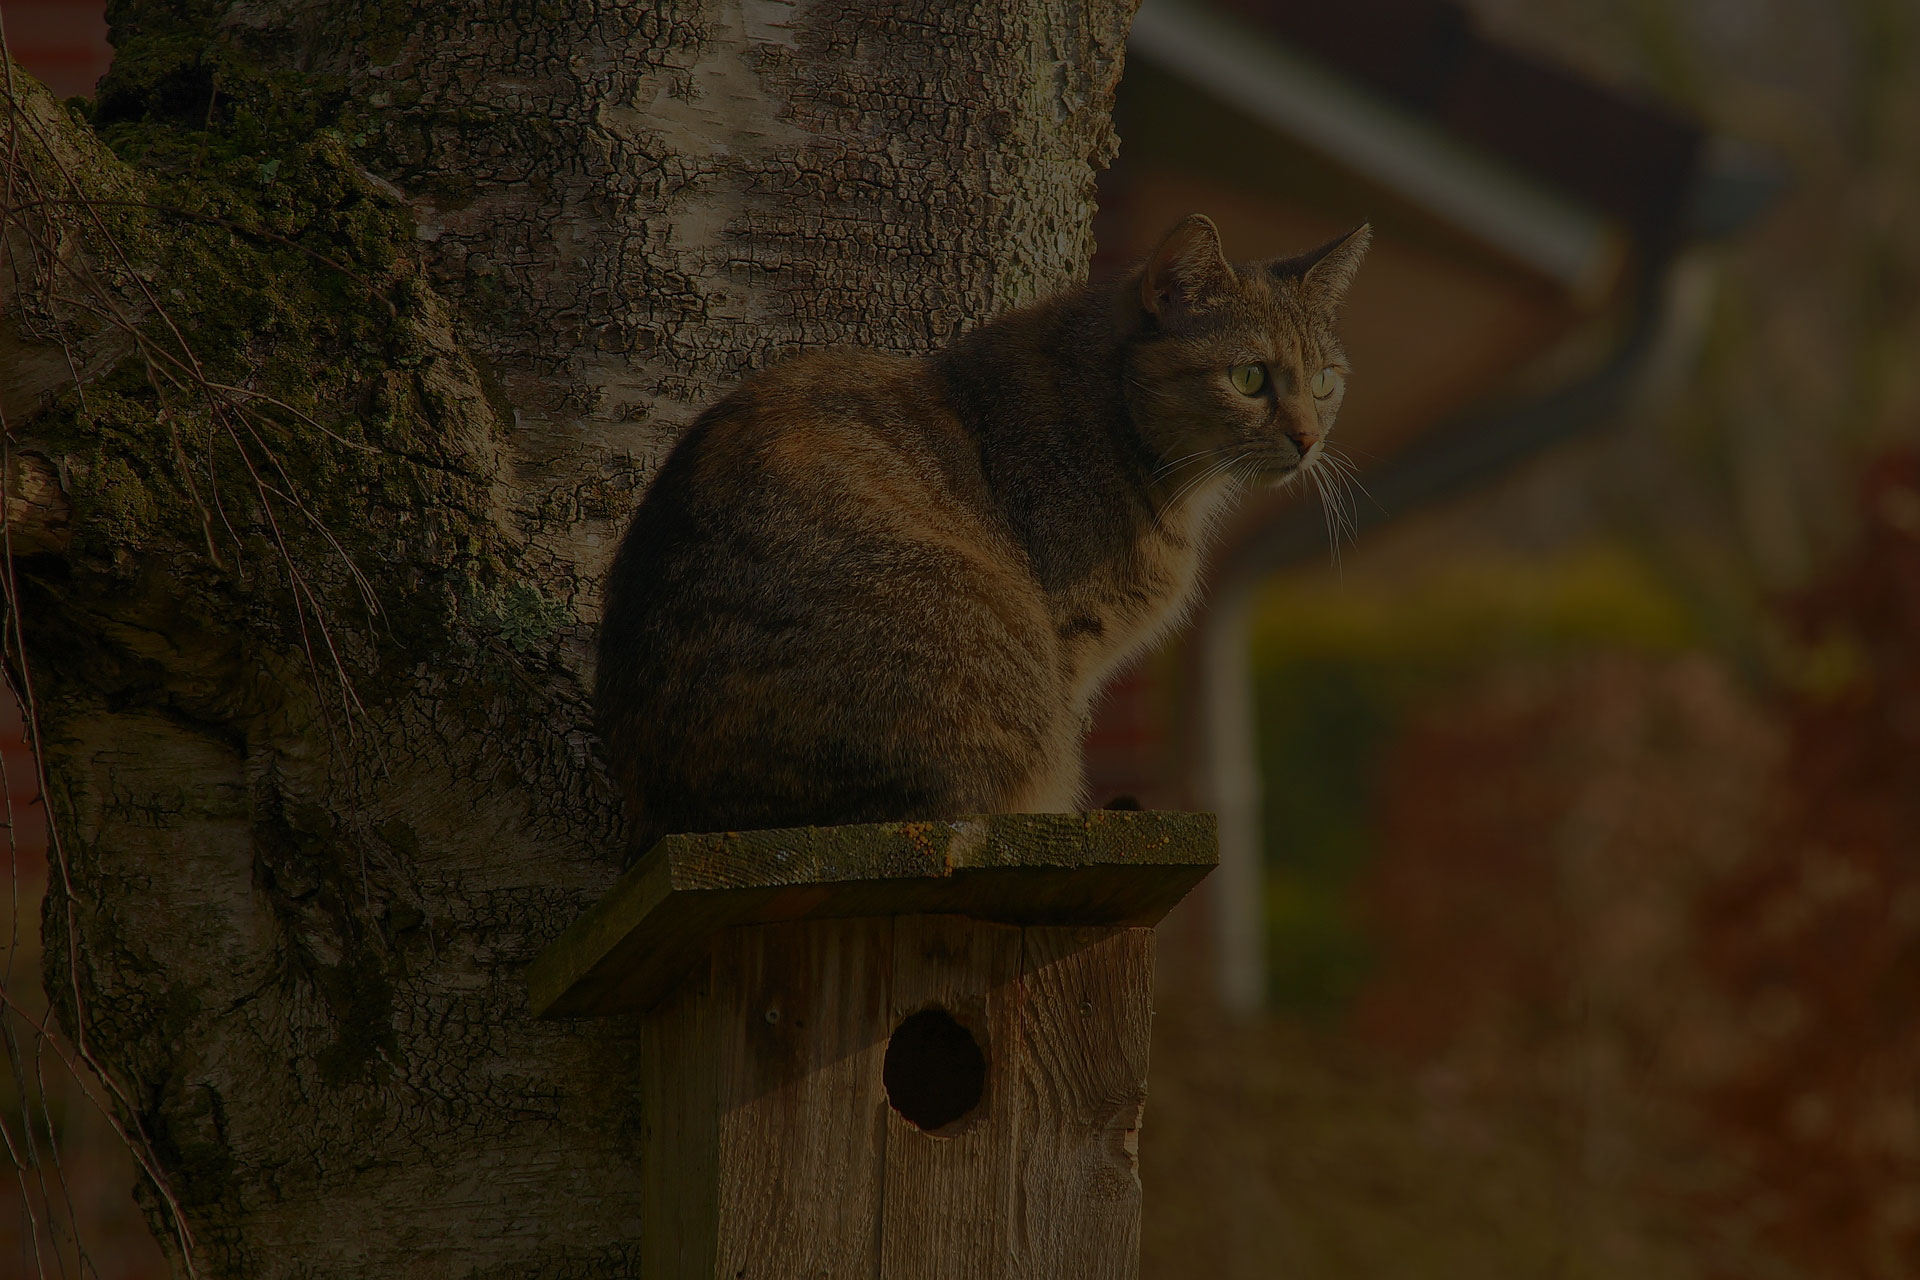 a cat sitting on the bird house on the tree.